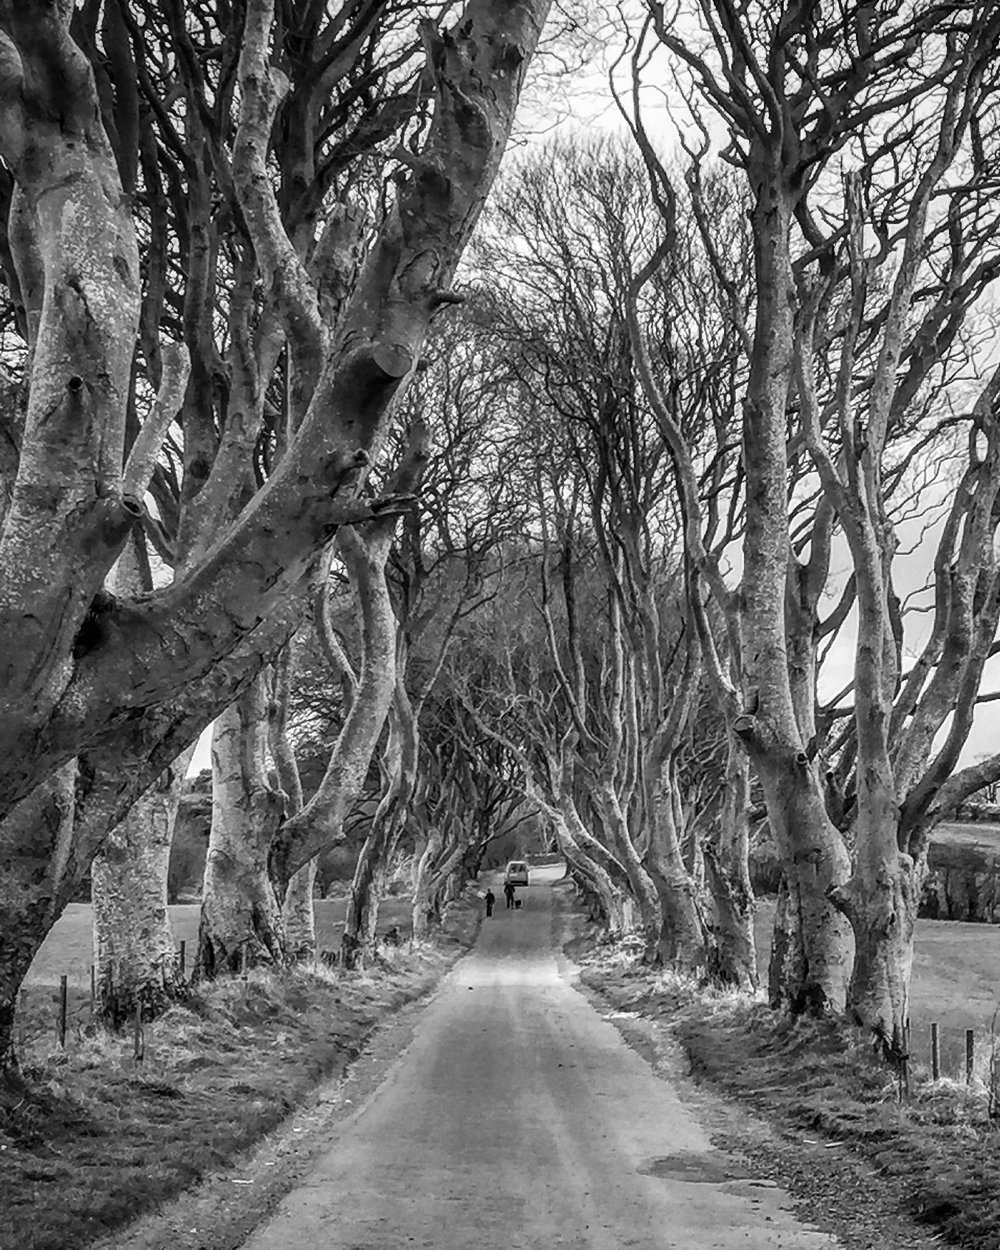 dark_hedges_antrim_roadtrip_ni_explorer_niexplorer_northern_ireland_blog.jpg